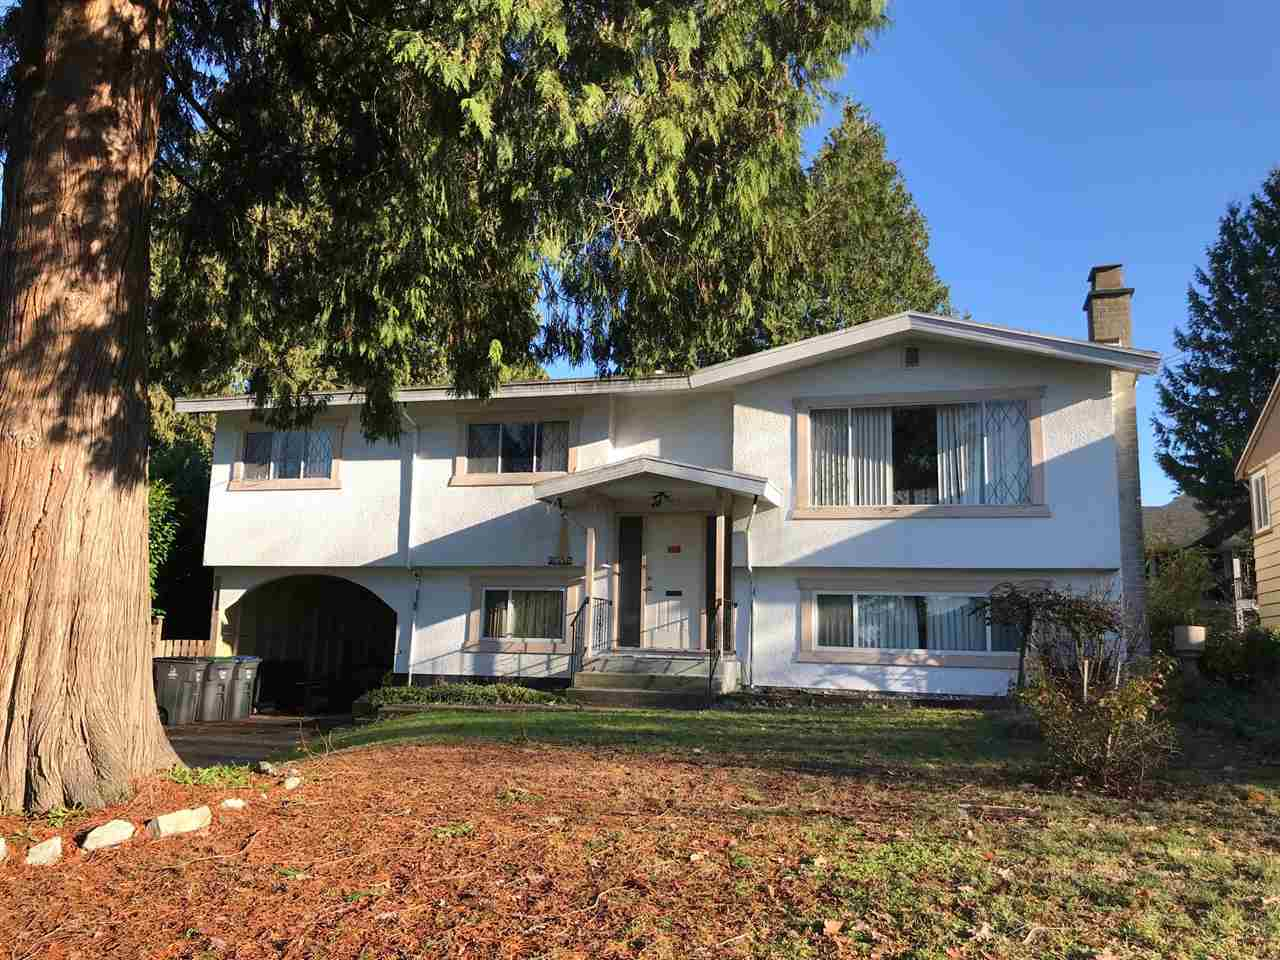 "Photo 1: Photos: 11052 131 Street in Surrey: Whalley House for sale in ""N. Whalley/Bridgeview"" (North Surrey)  : MLS® # R2226525"